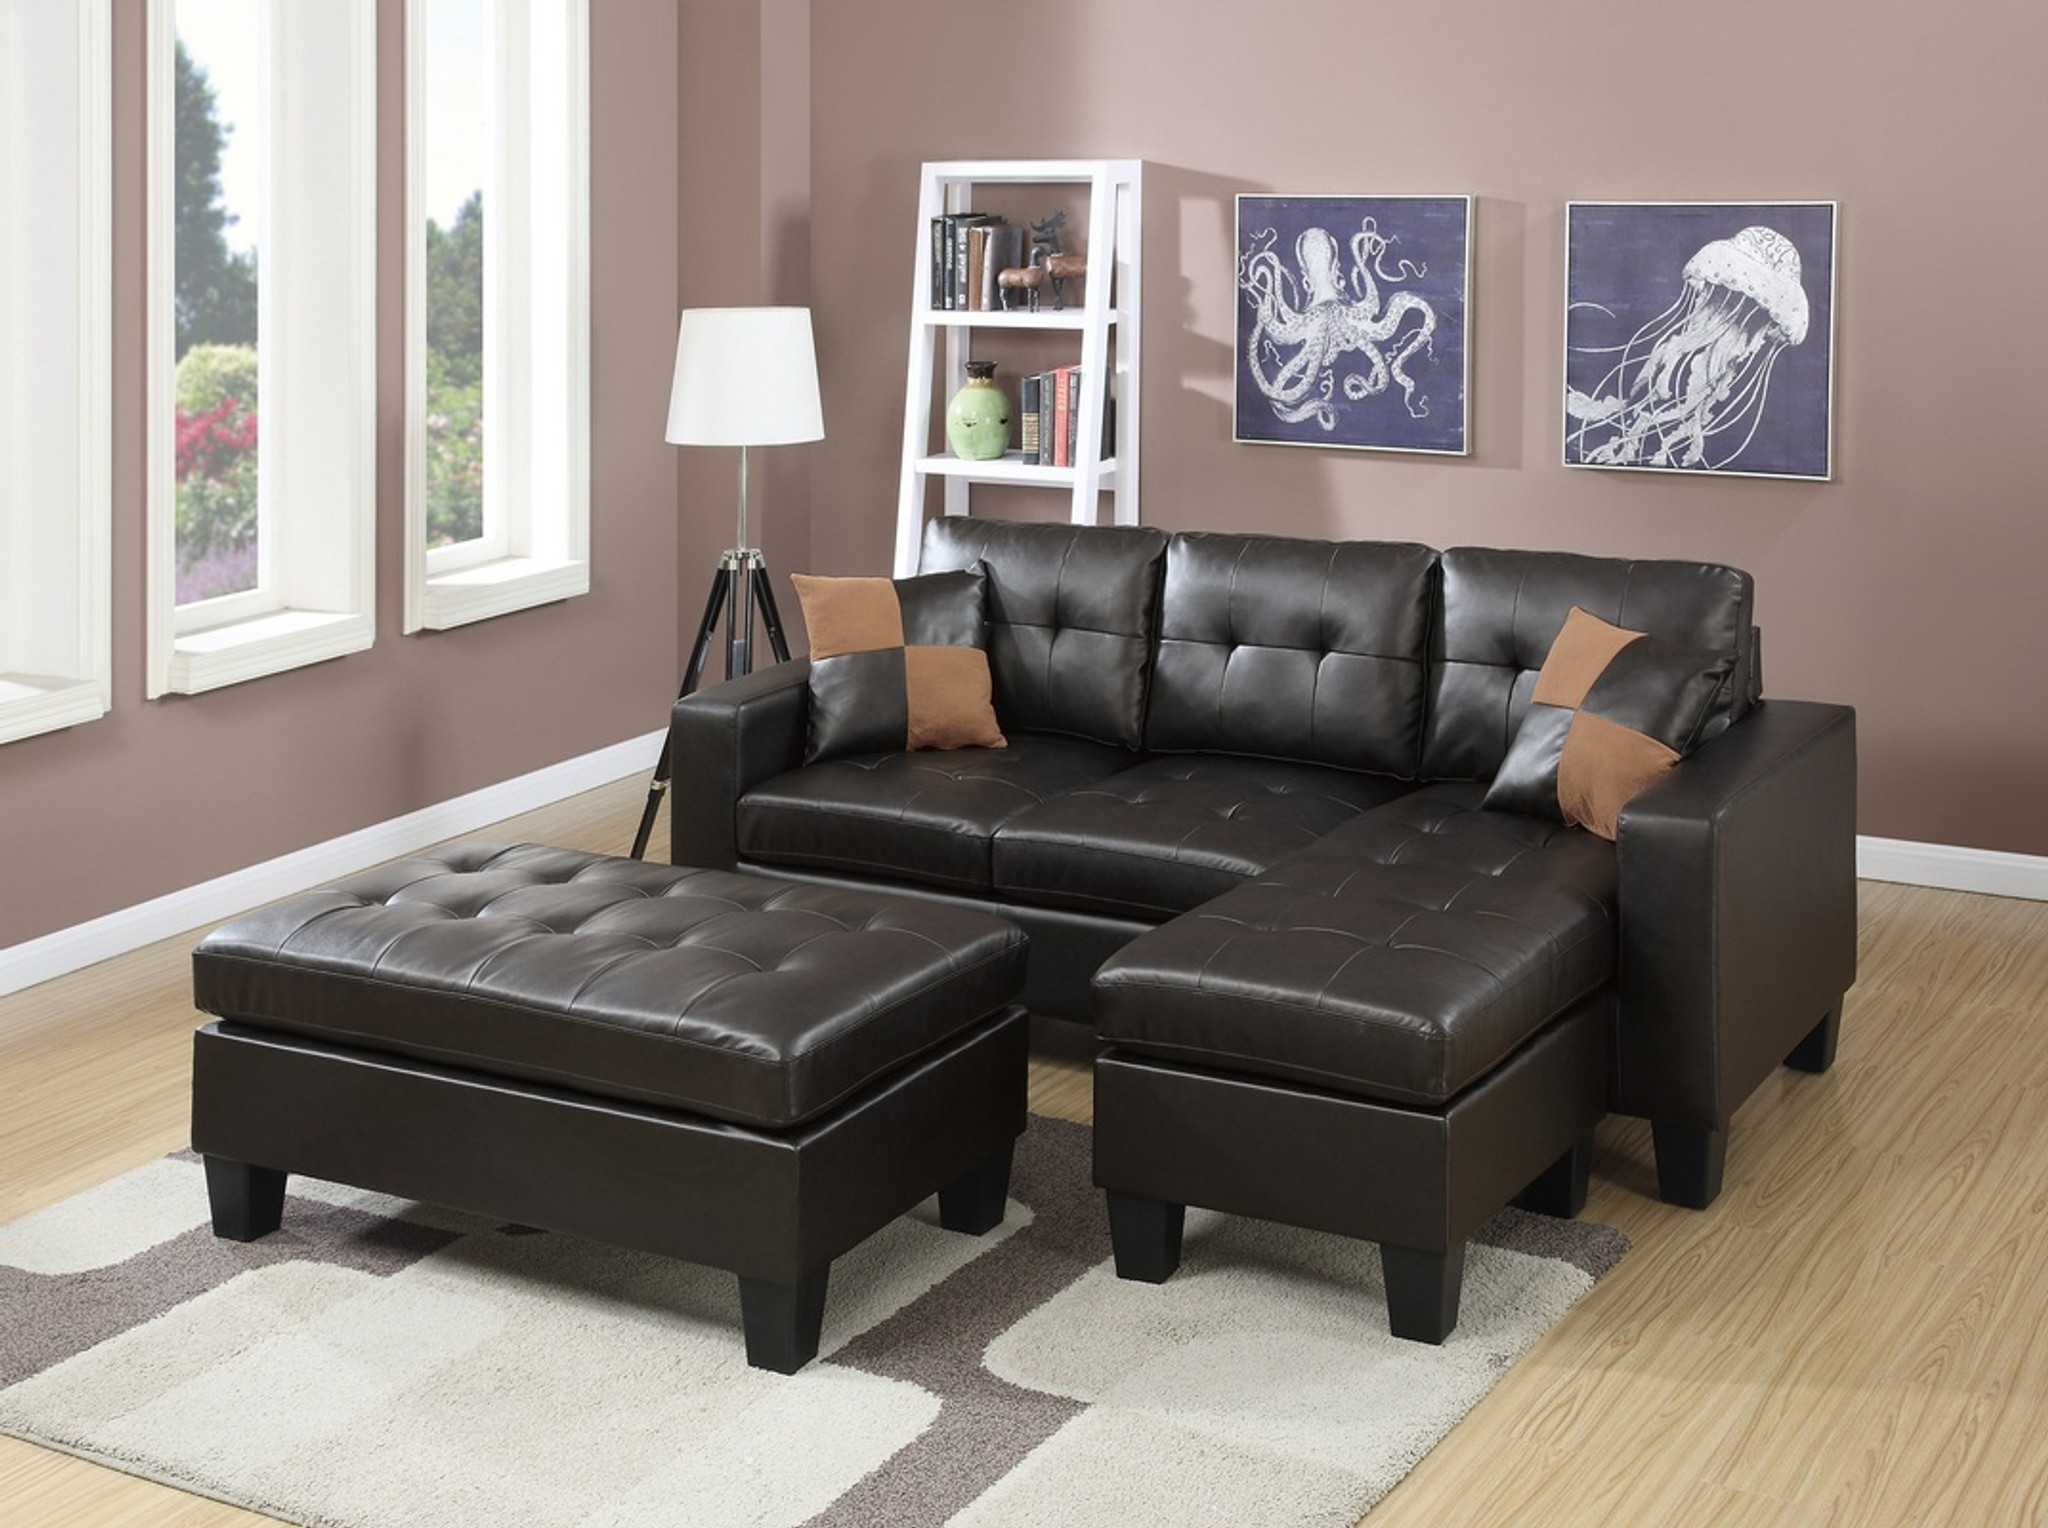 Sensational Molly All In One Sectional Set With Ottoman In Espresso Machost Co Dining Chair Design Ideas Machostcouk